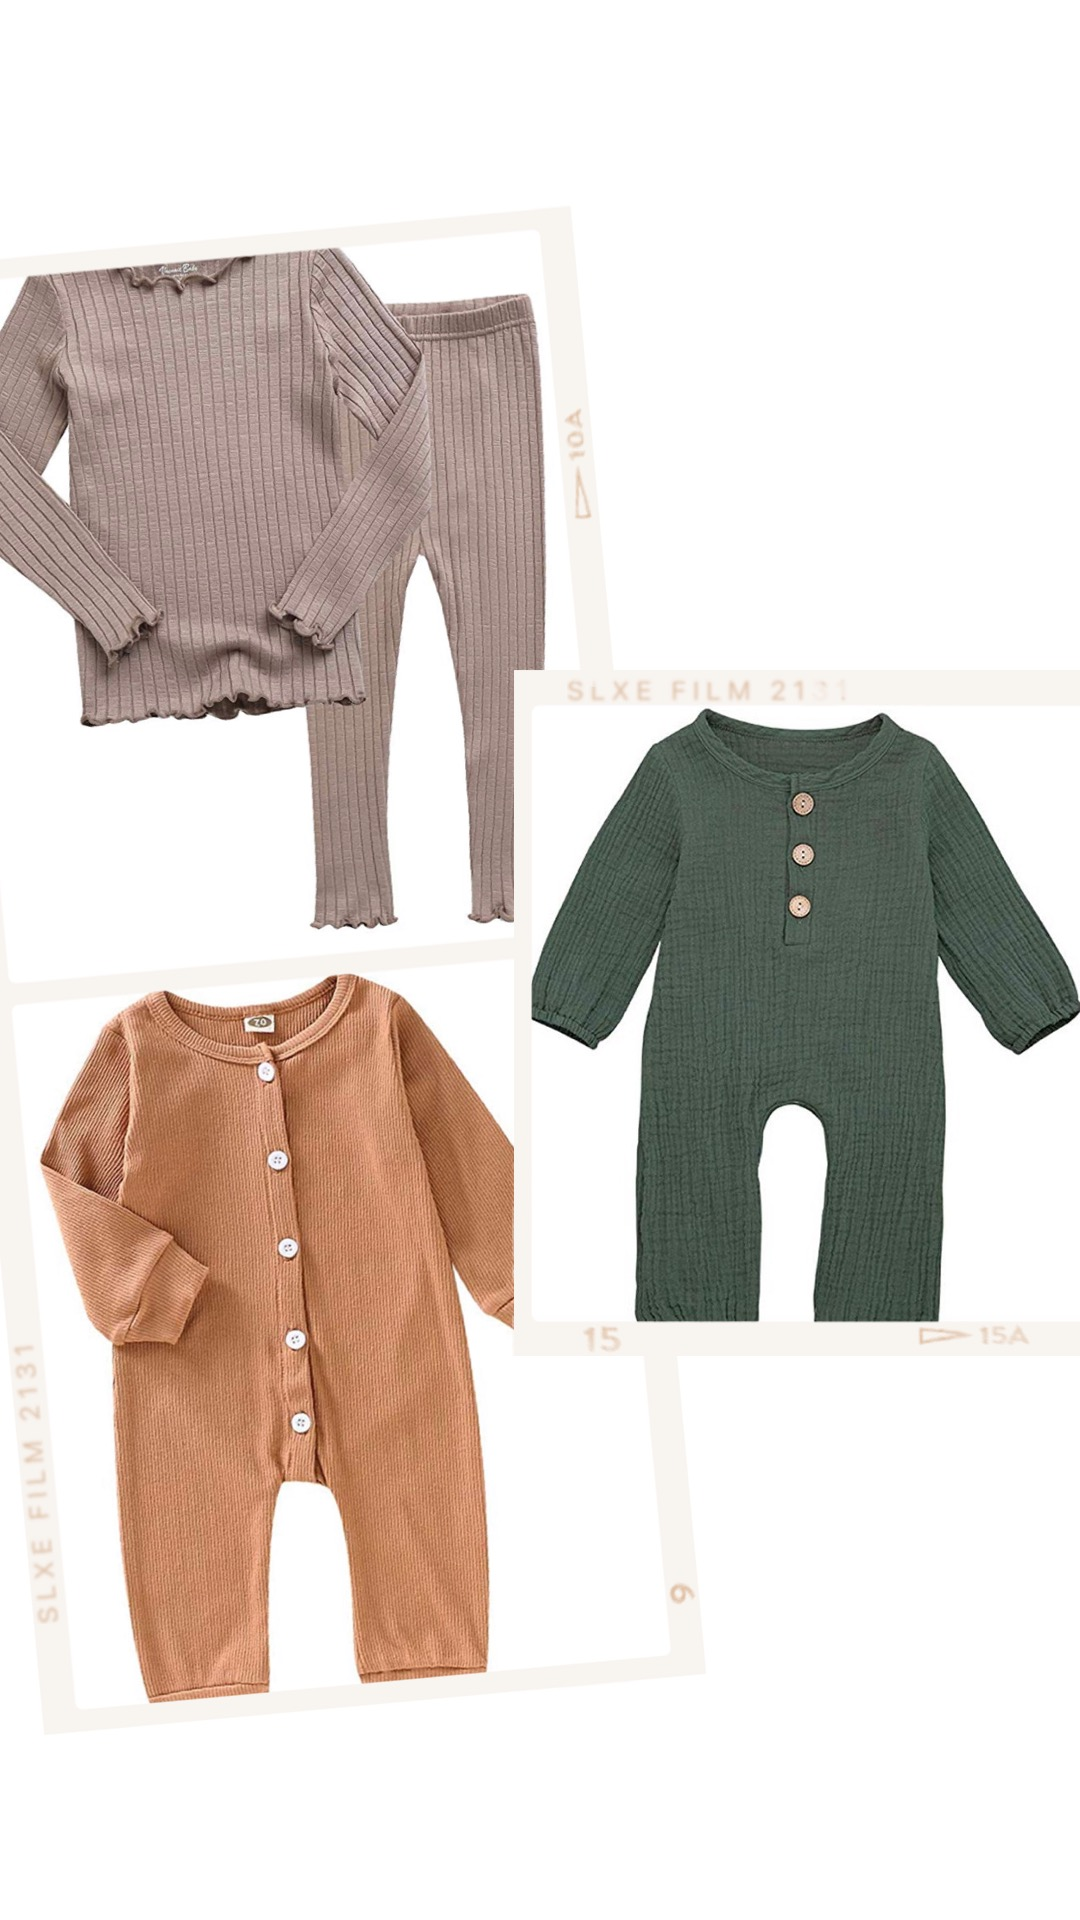 <center> STYLISH BABY PIECES FOR LESS</center>